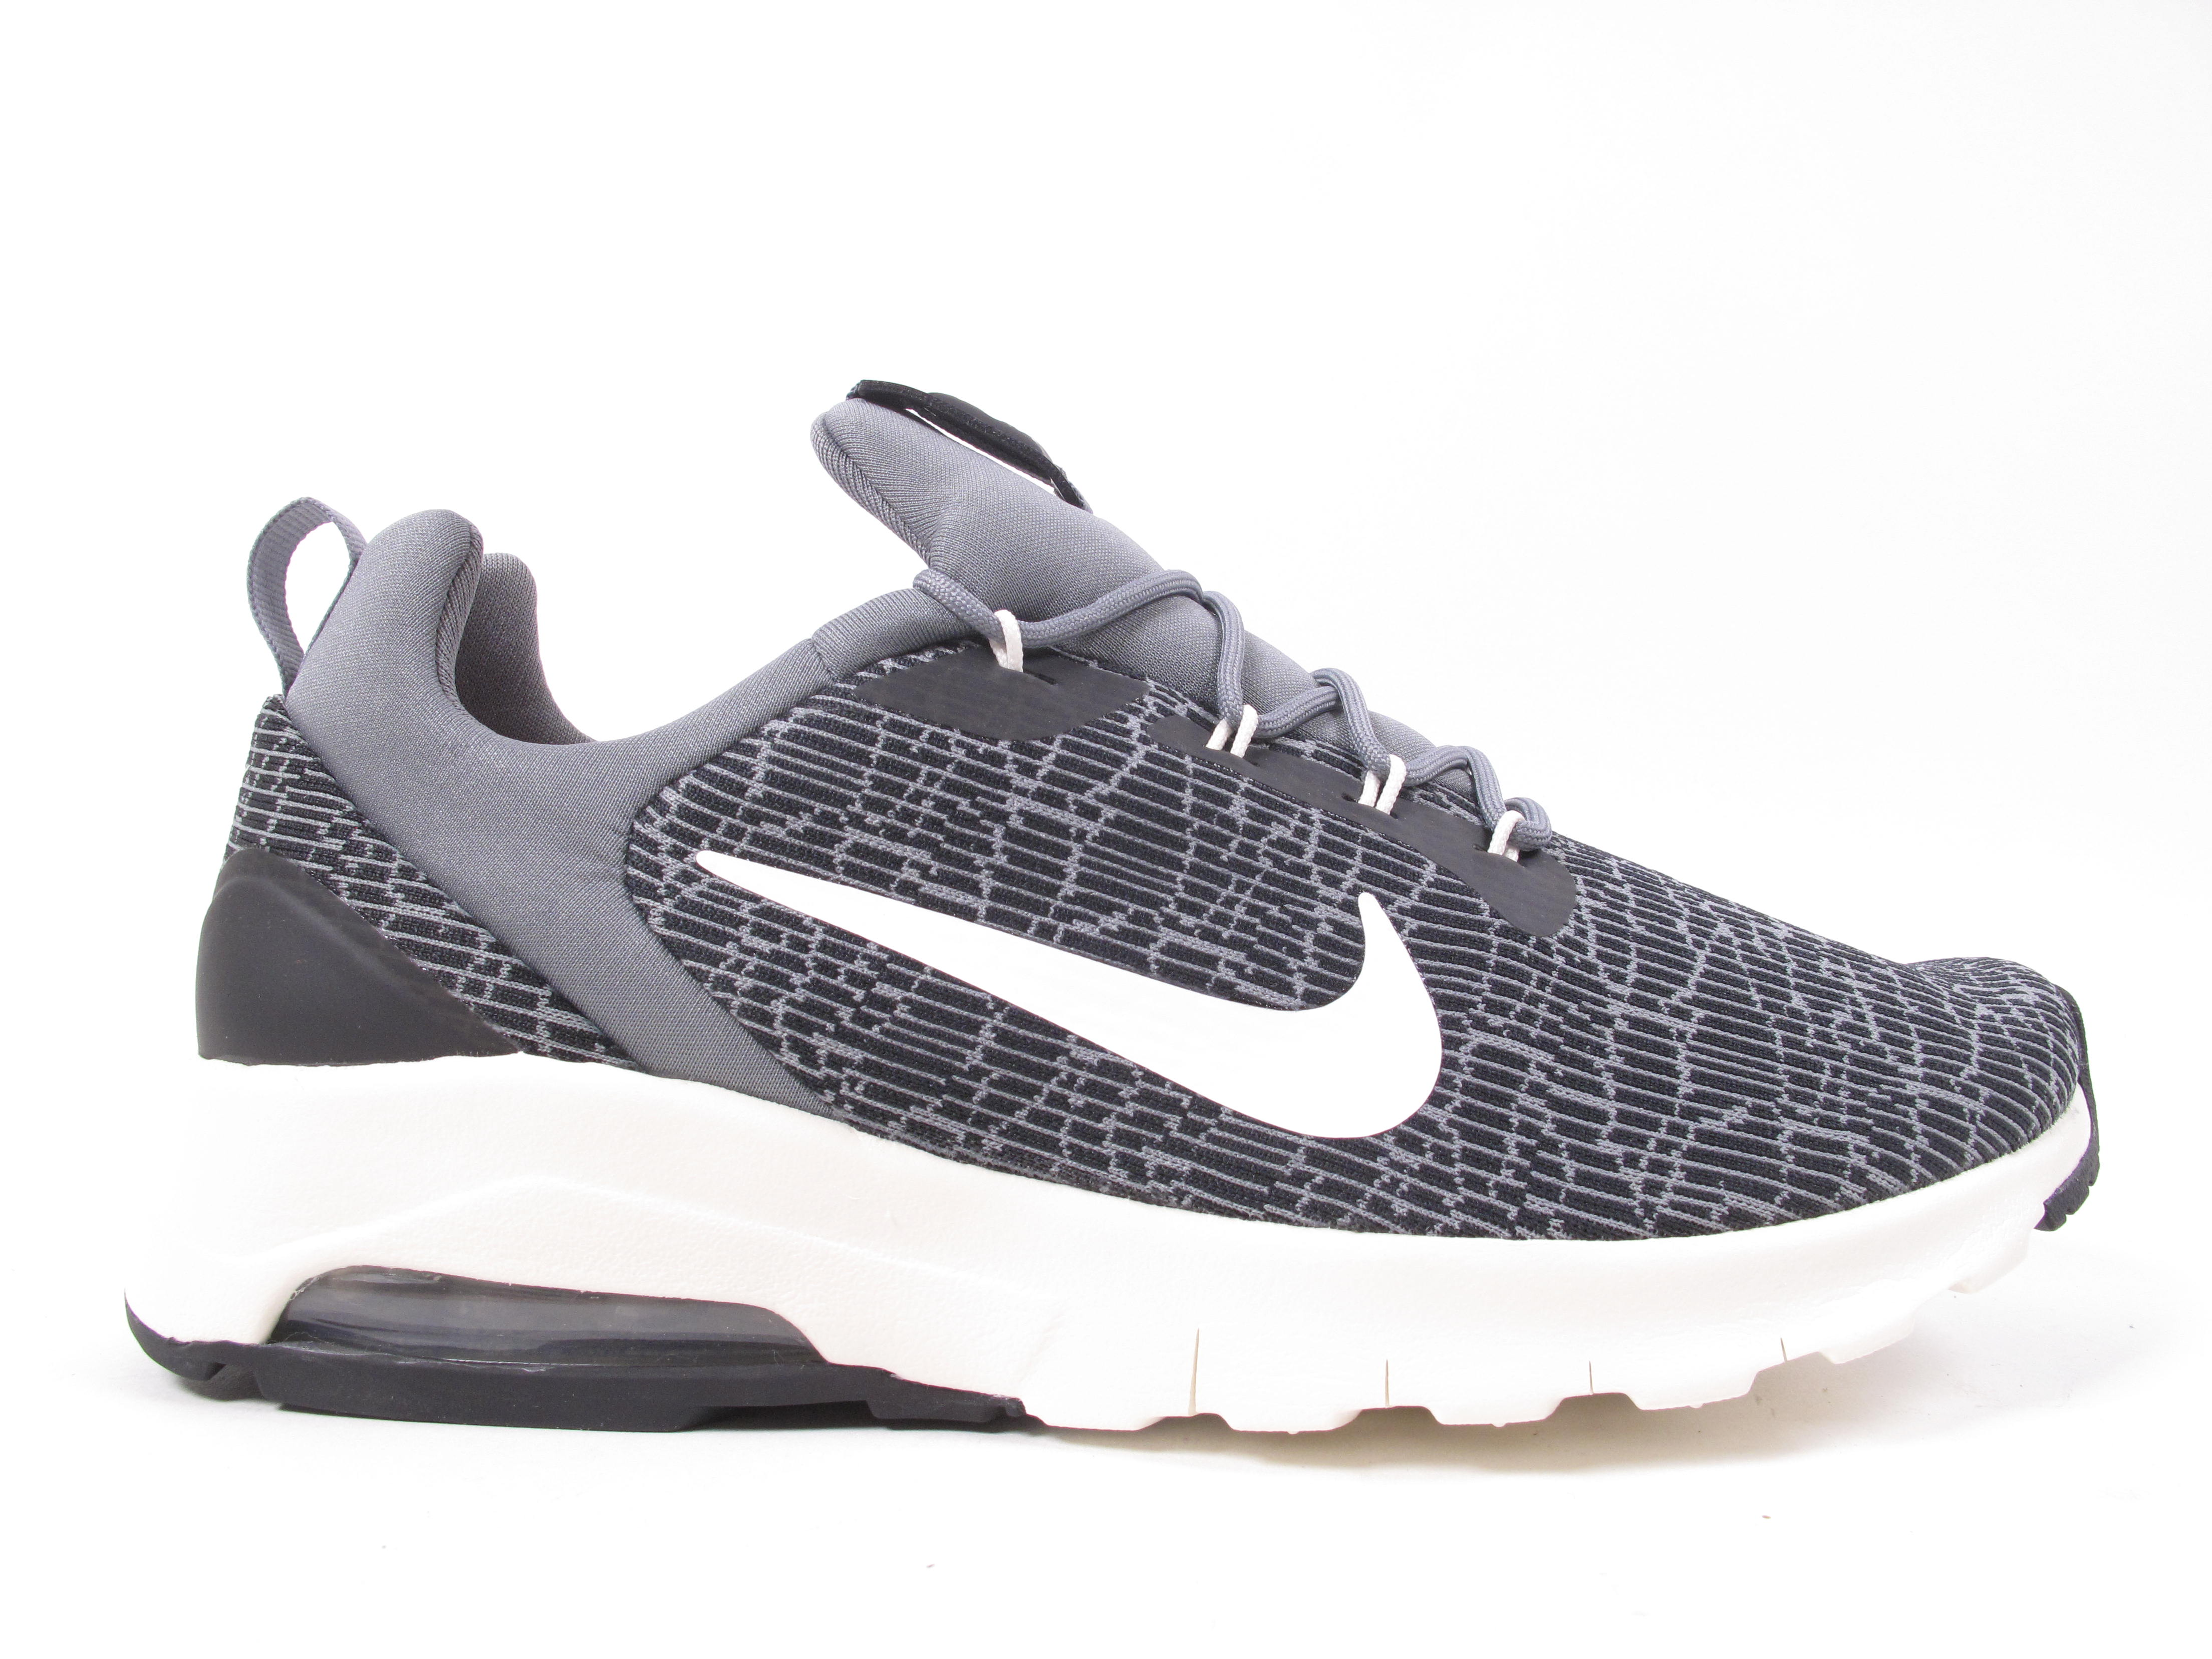 brand new 12b3c 06923 NIKE donna fitnessund tempo libero scarpe WMNS AIR MAX MOVIMENTO RACER NERO    - mainstreetblytheville.org